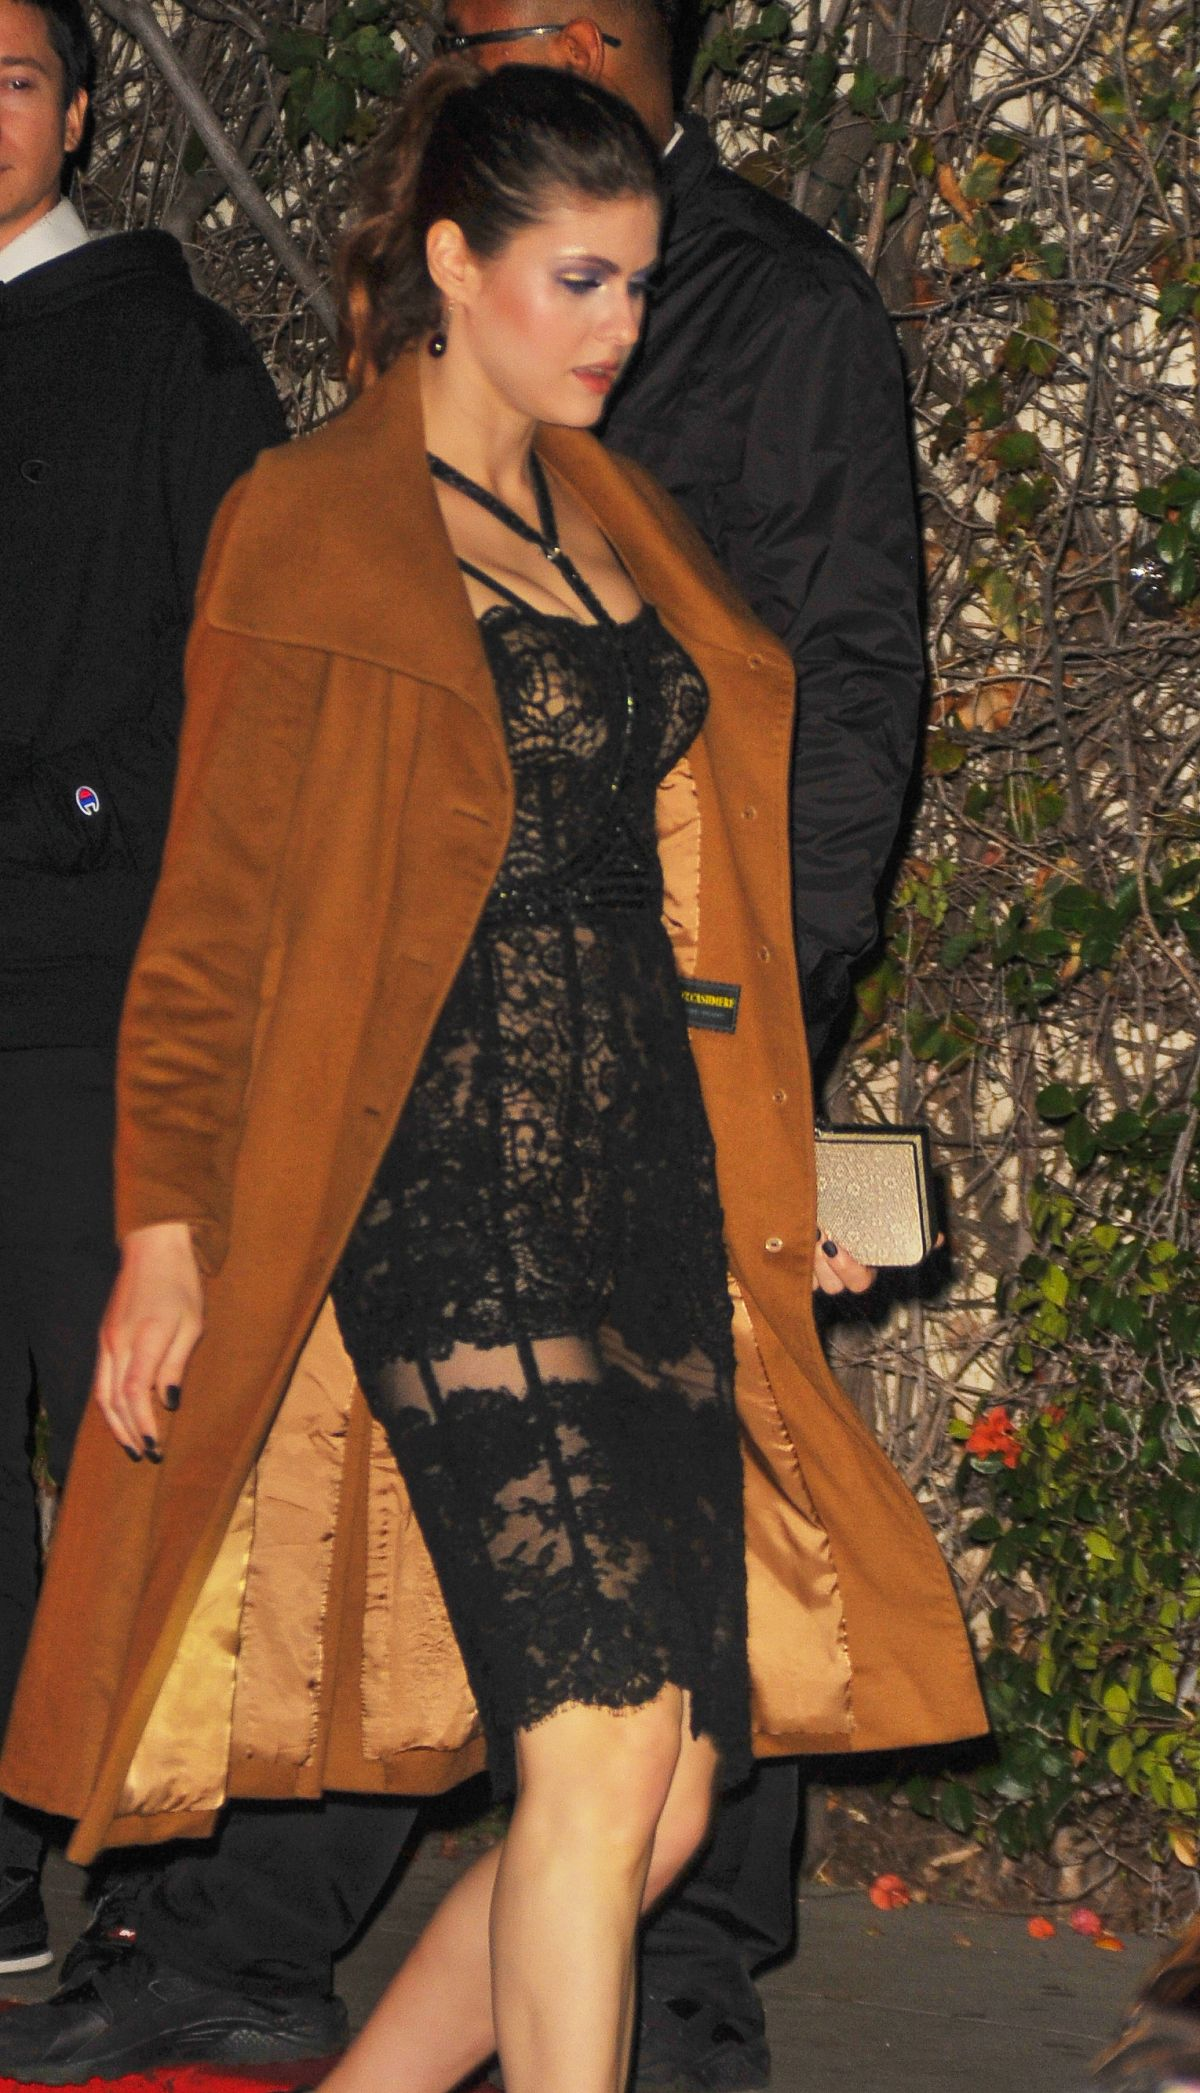 ALEXANDRA DADDARIO at Chateau Marmont in Los Angeles 01/08/2017